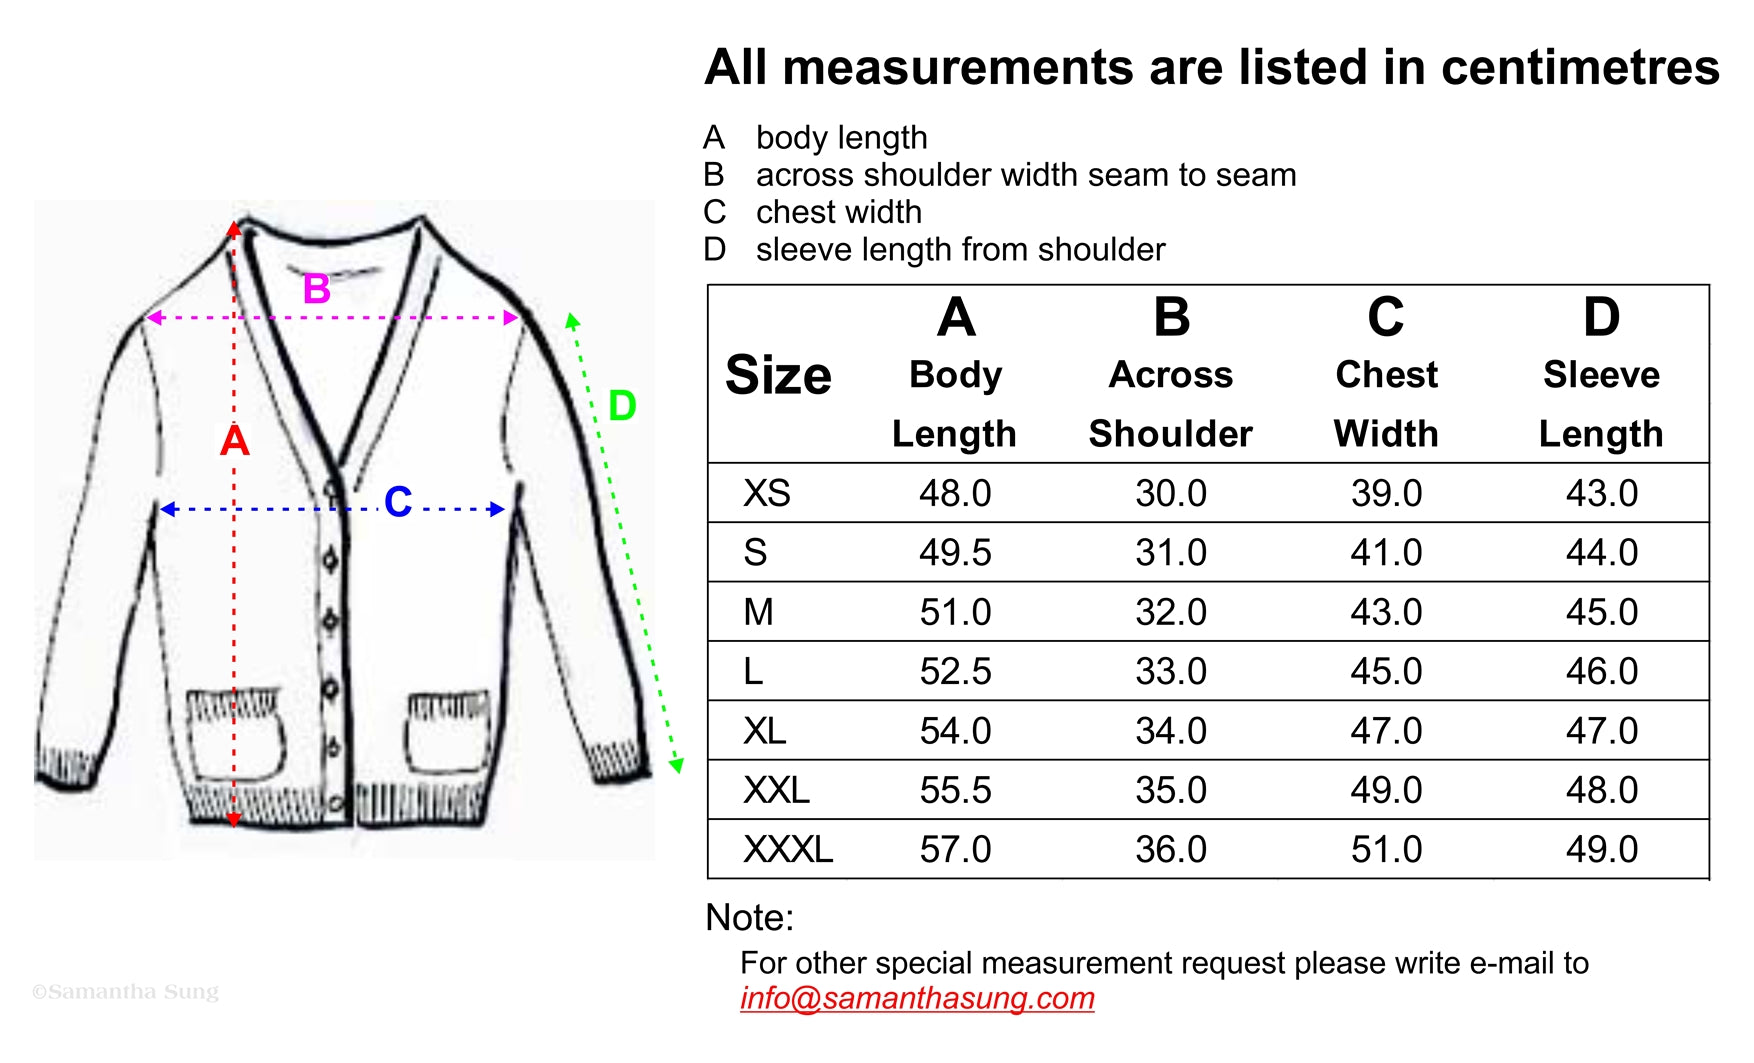 Charlotte Cardigan Short Size Chart CM Spec By Samantha Sung